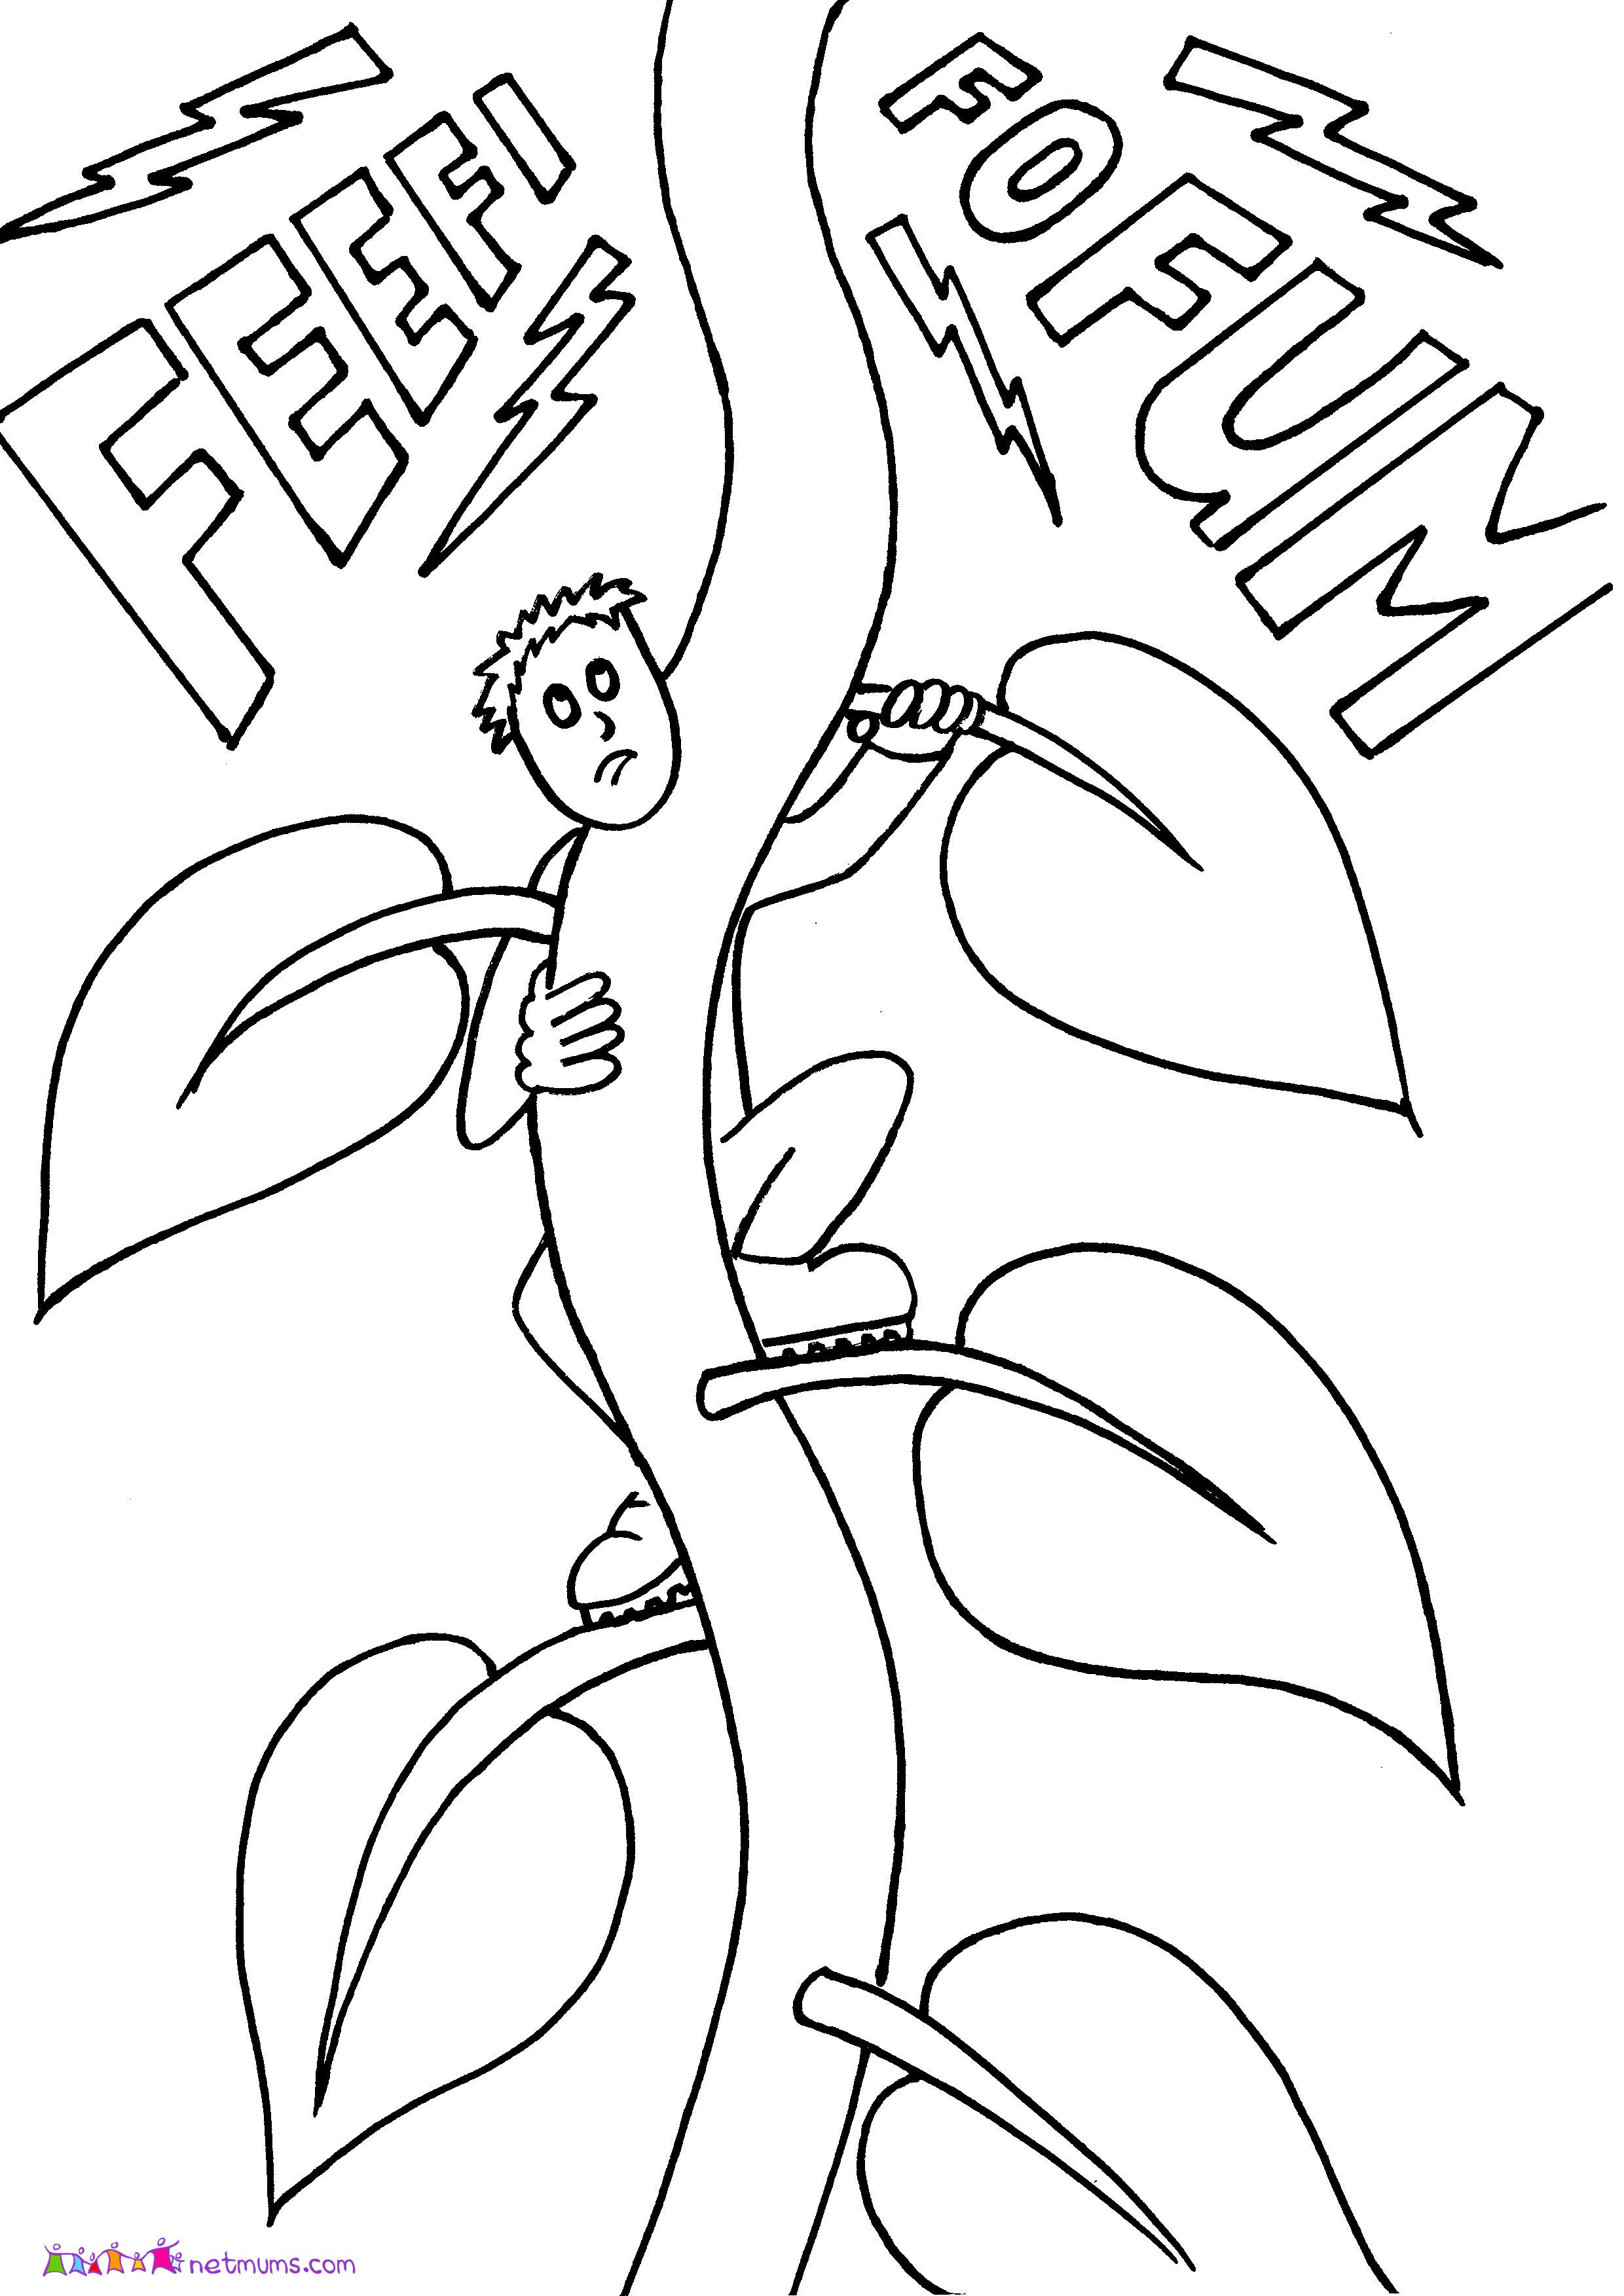 Jack and Beanstalk Coloring Pages for Kids - Enjoy Coloring ...